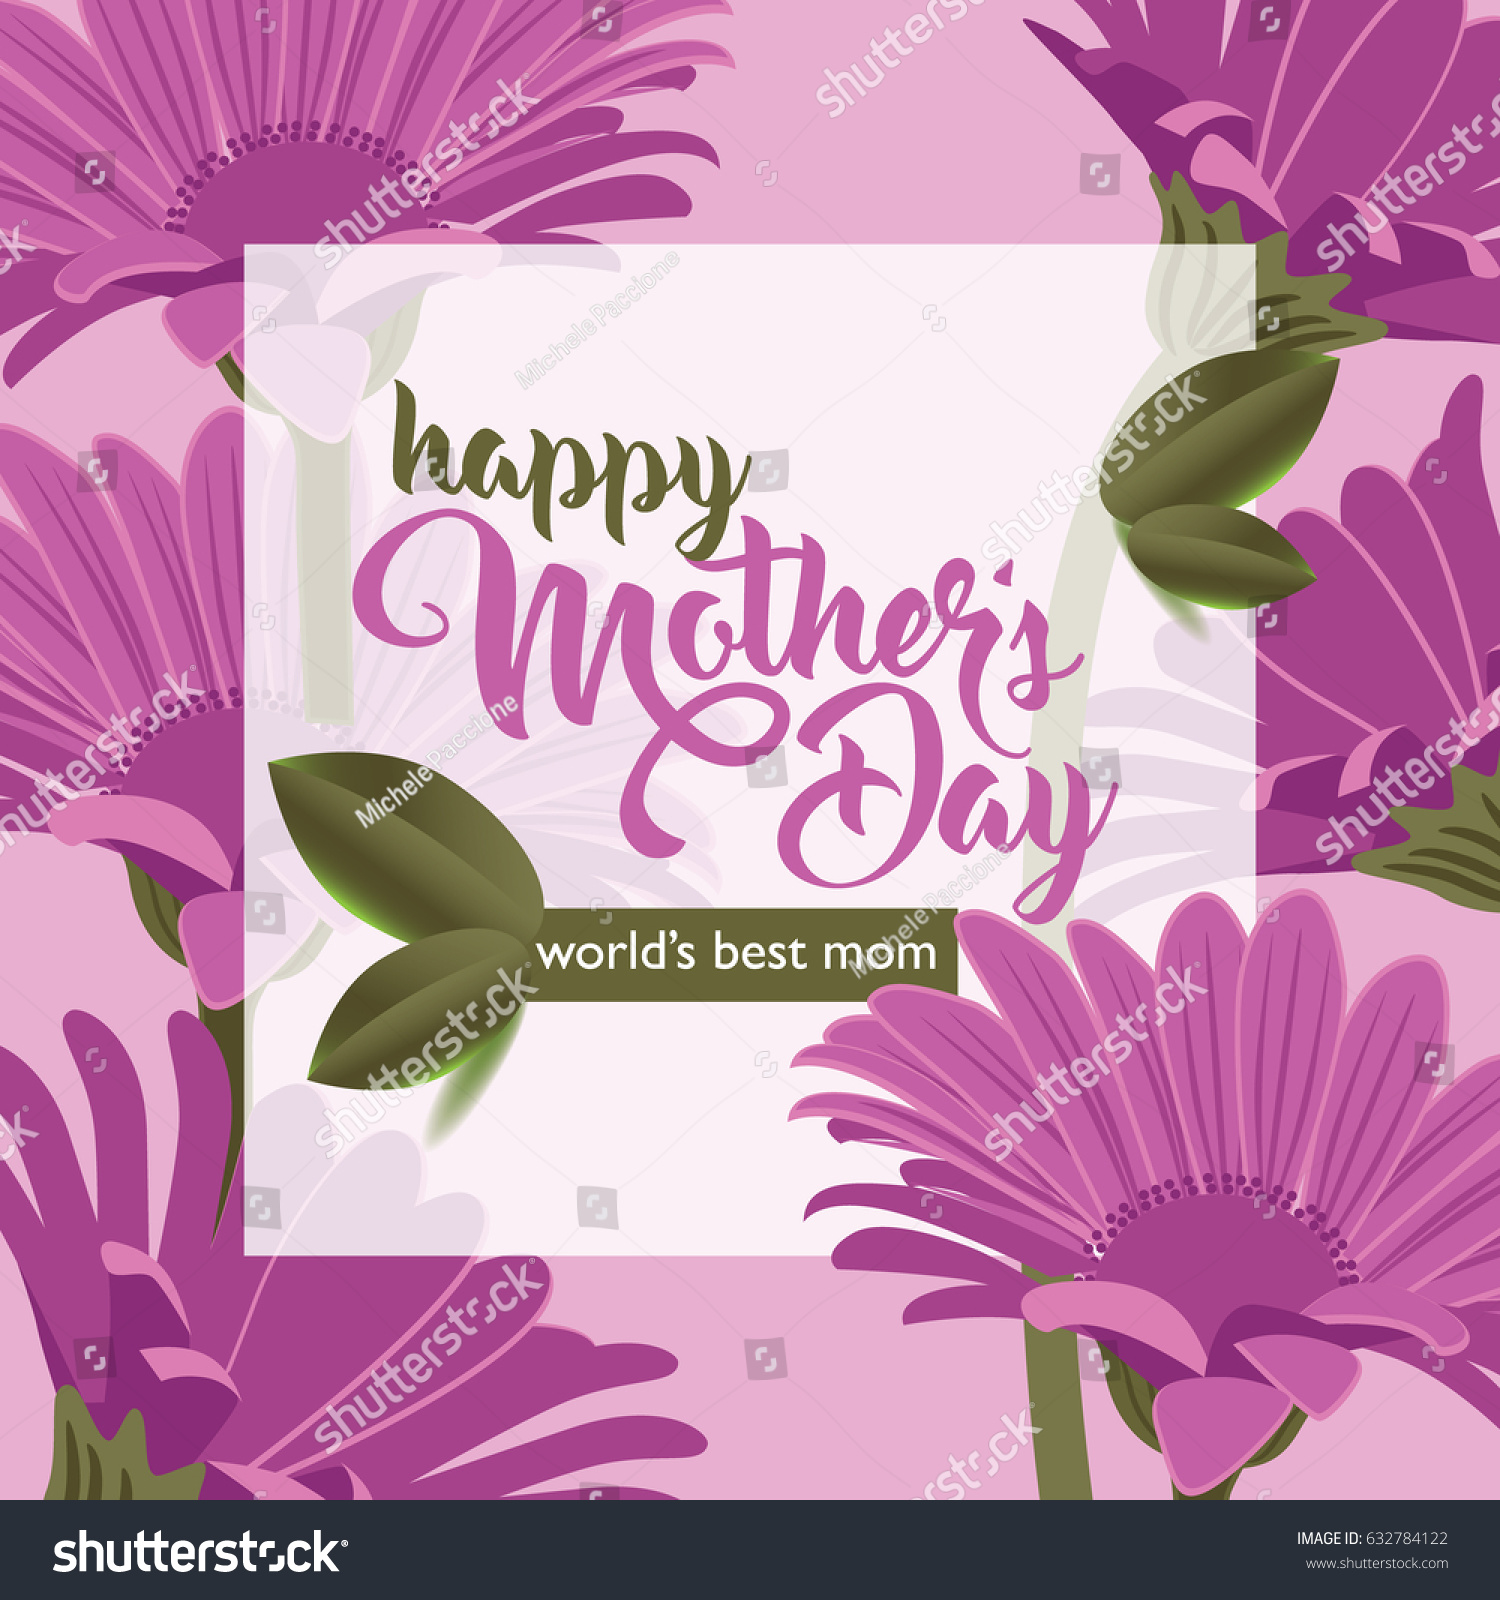 Happy mothers day greeting card design stock vector 632784122 happy mothers day greeting card design with pink daisies and copy space eps 10 vector kristyandbryce Image collections